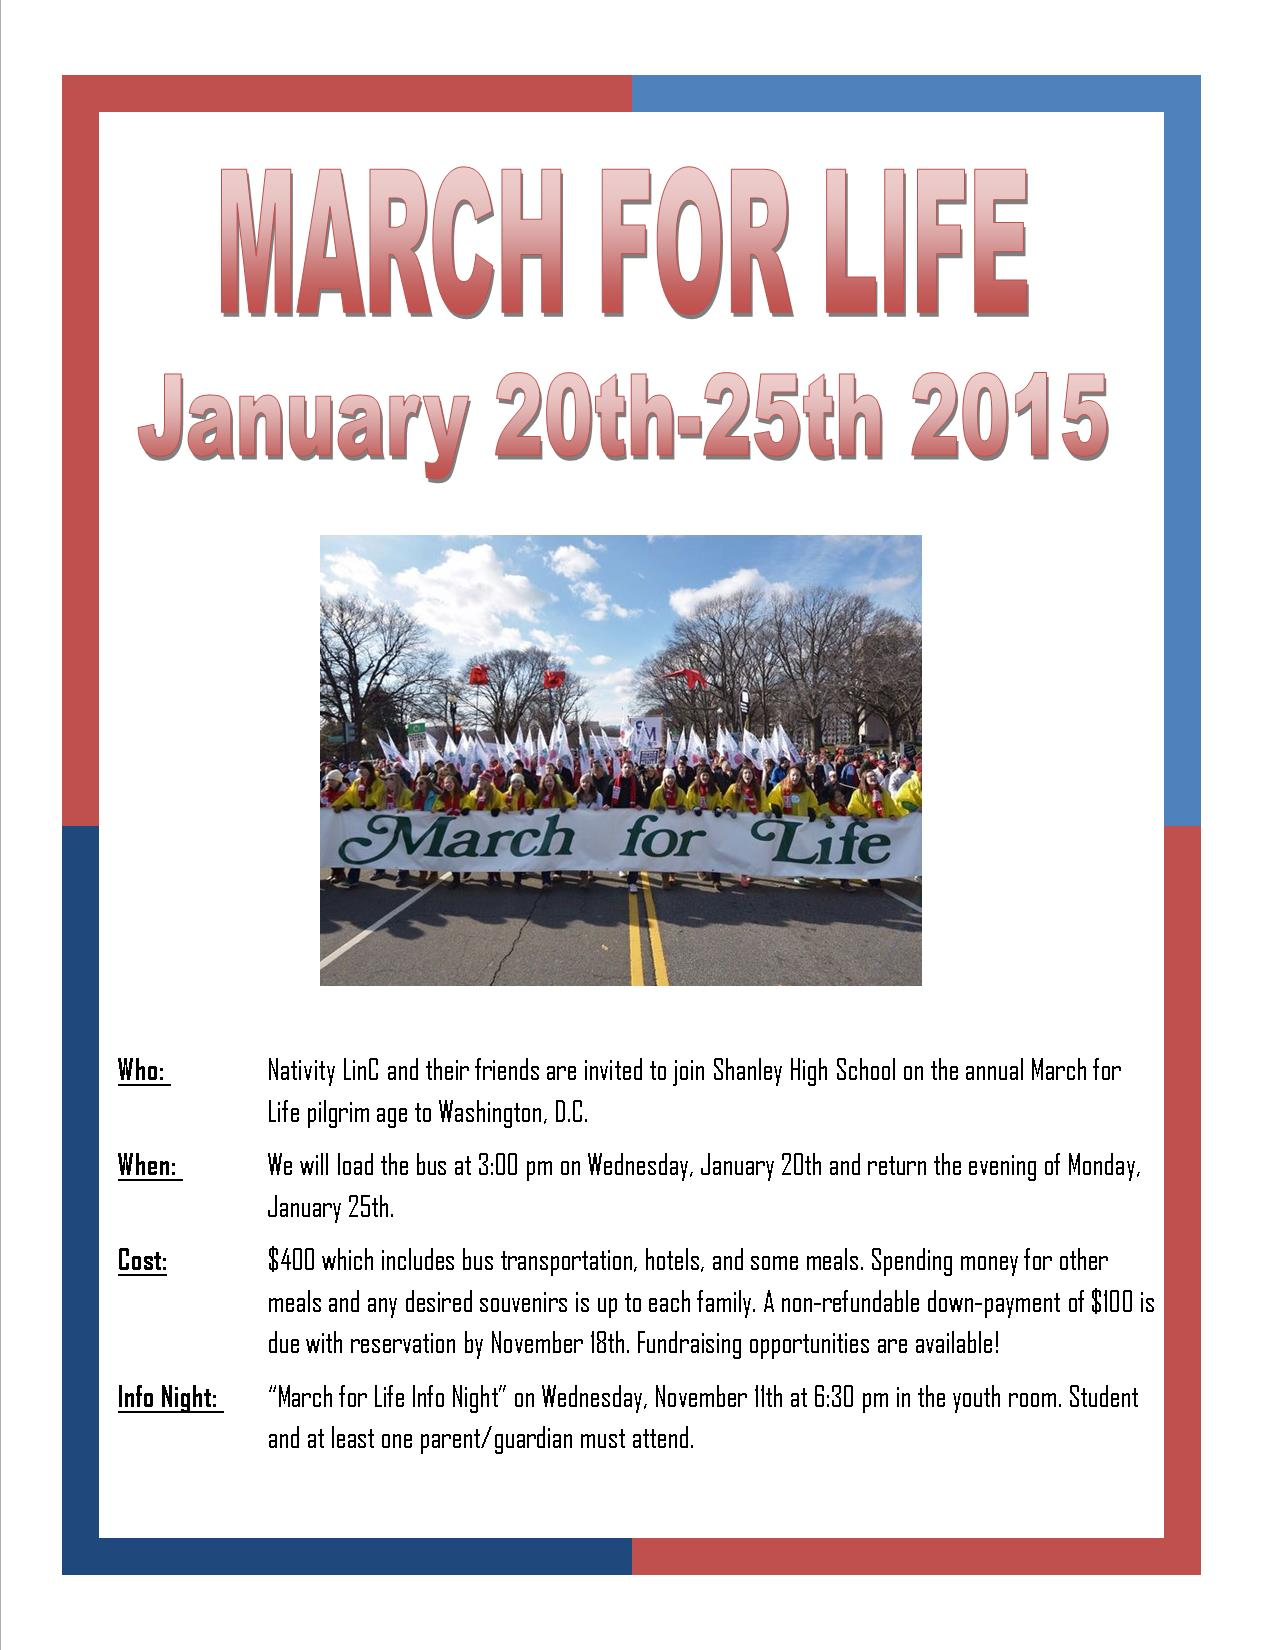 March for Life flyer